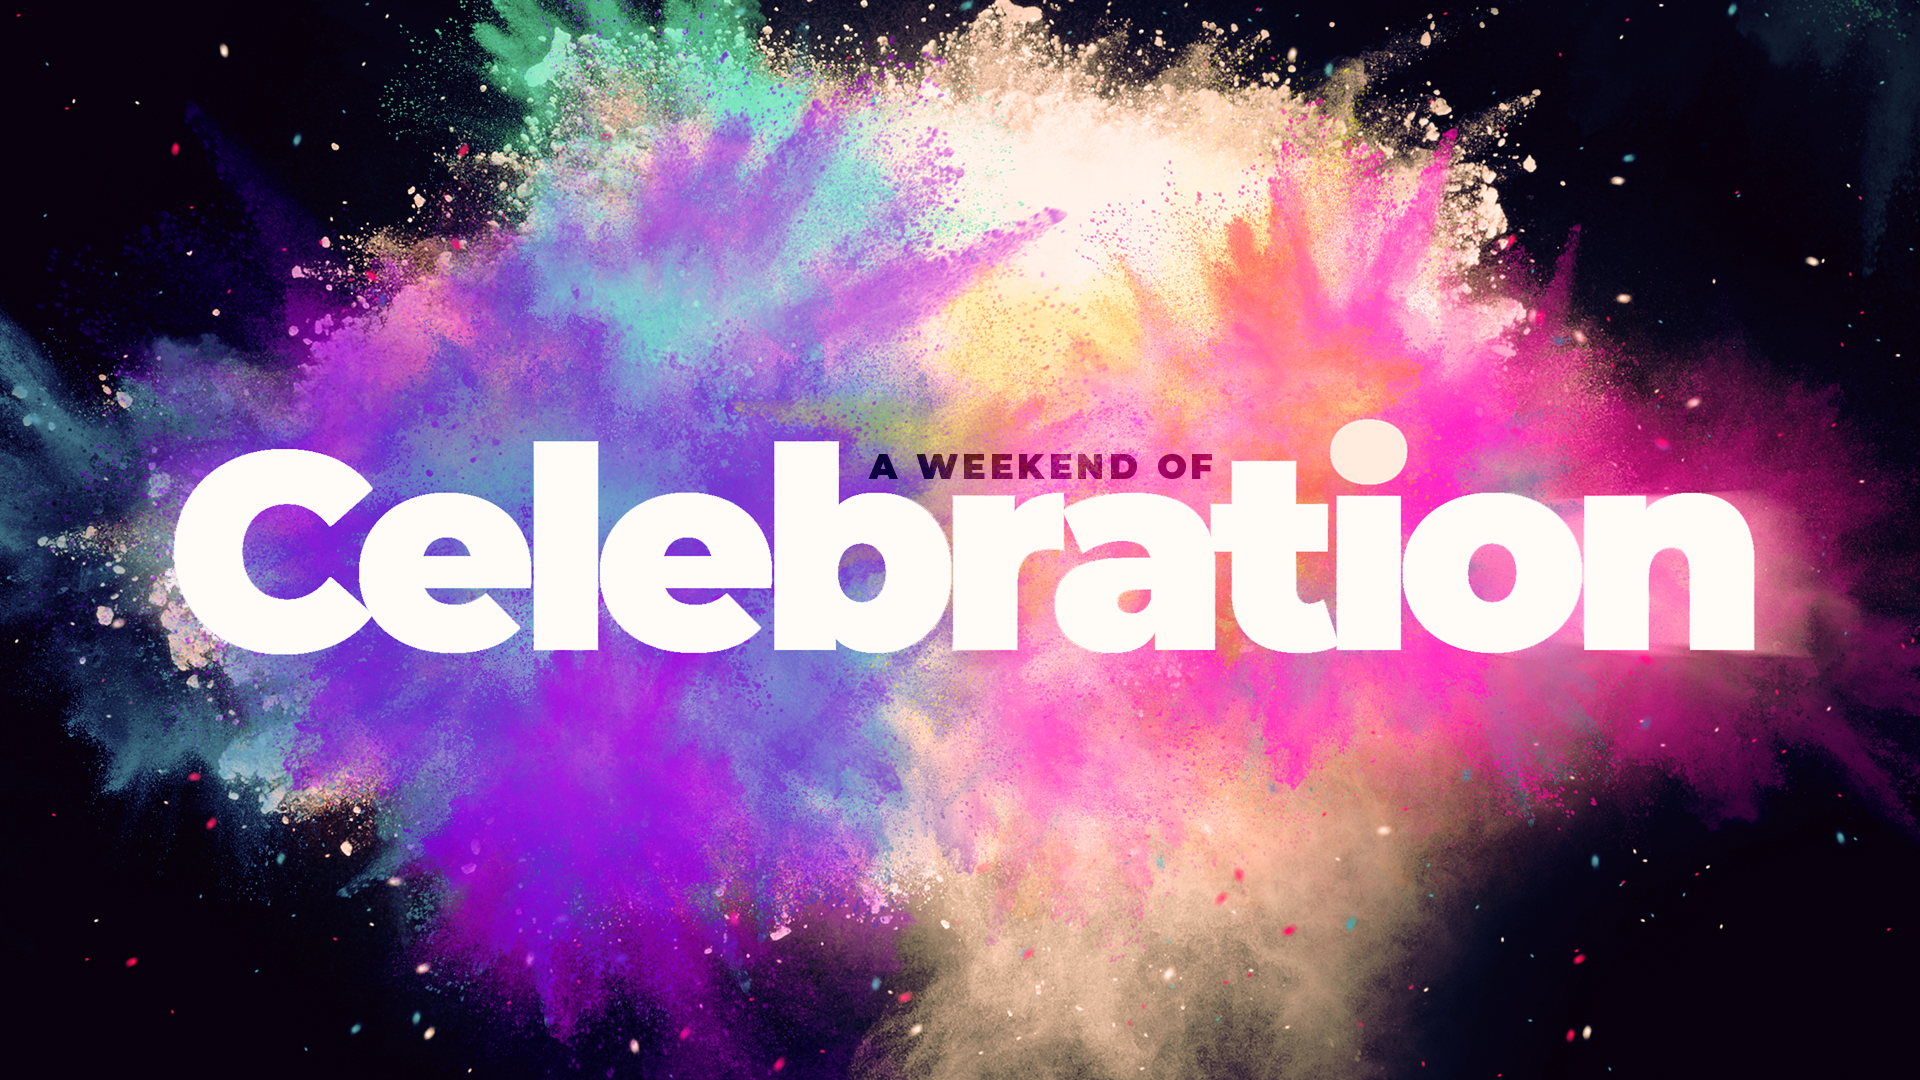 Celebration Weekend Church Graphic.jpg